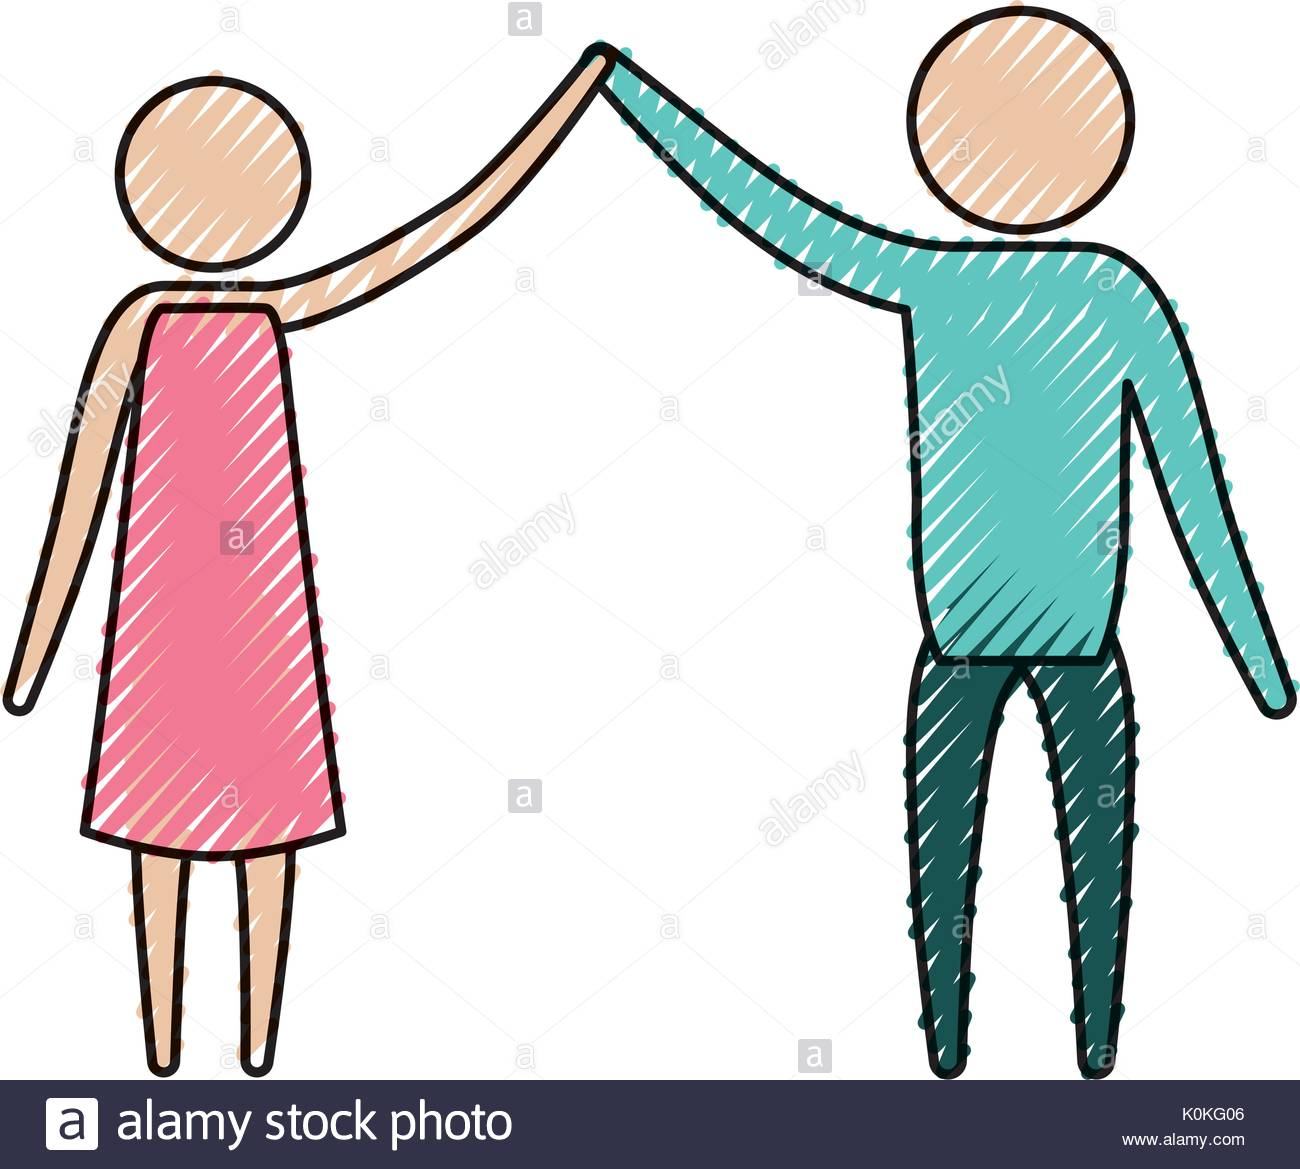 1300x1169 Color Crayon Silhouette Of Pictogram Couple Clashing Hands